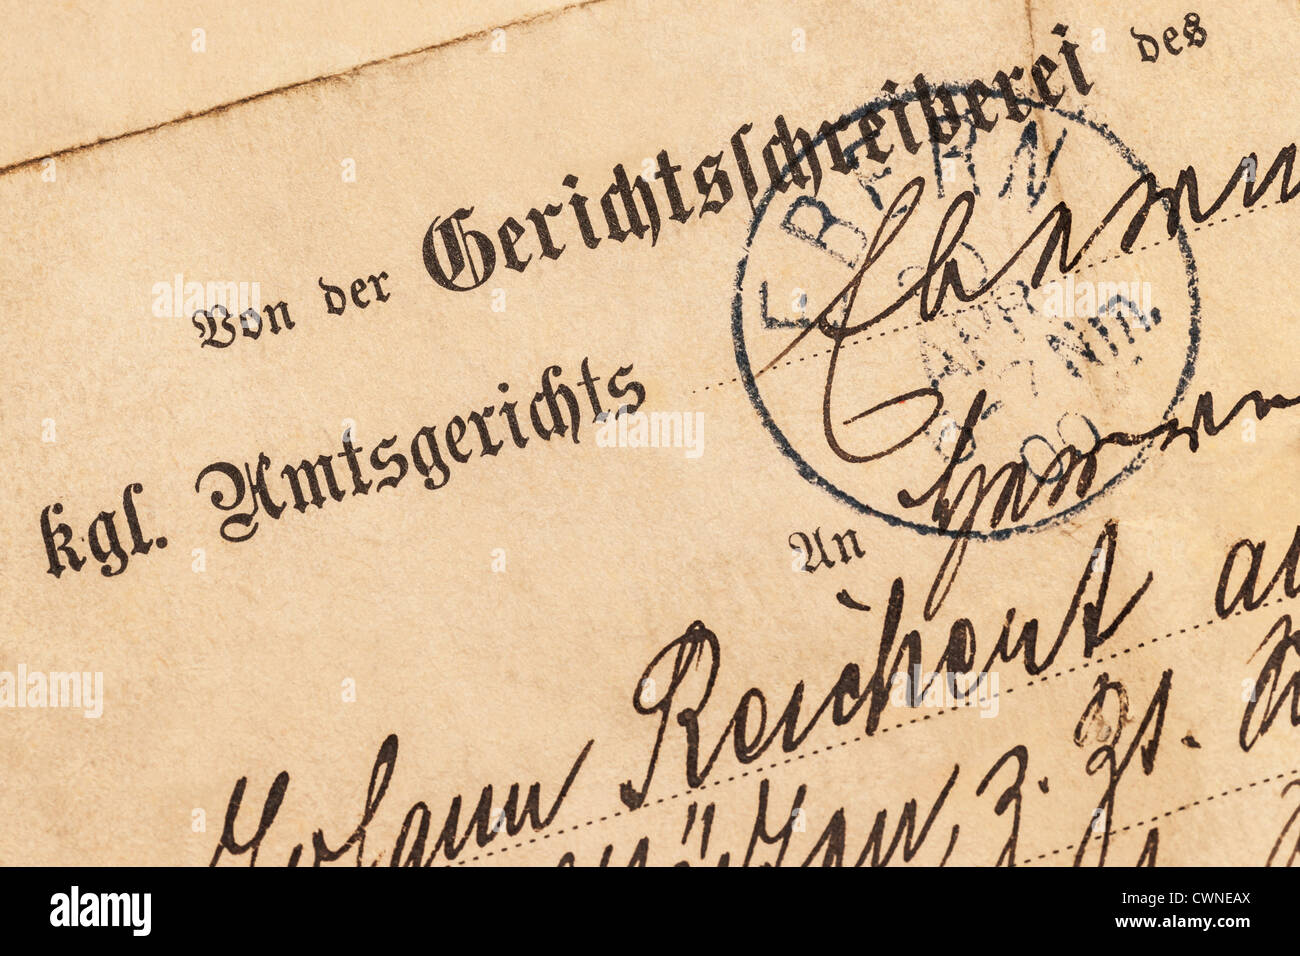 Old letter from an German royal local court from the year 1900 - Stock Image